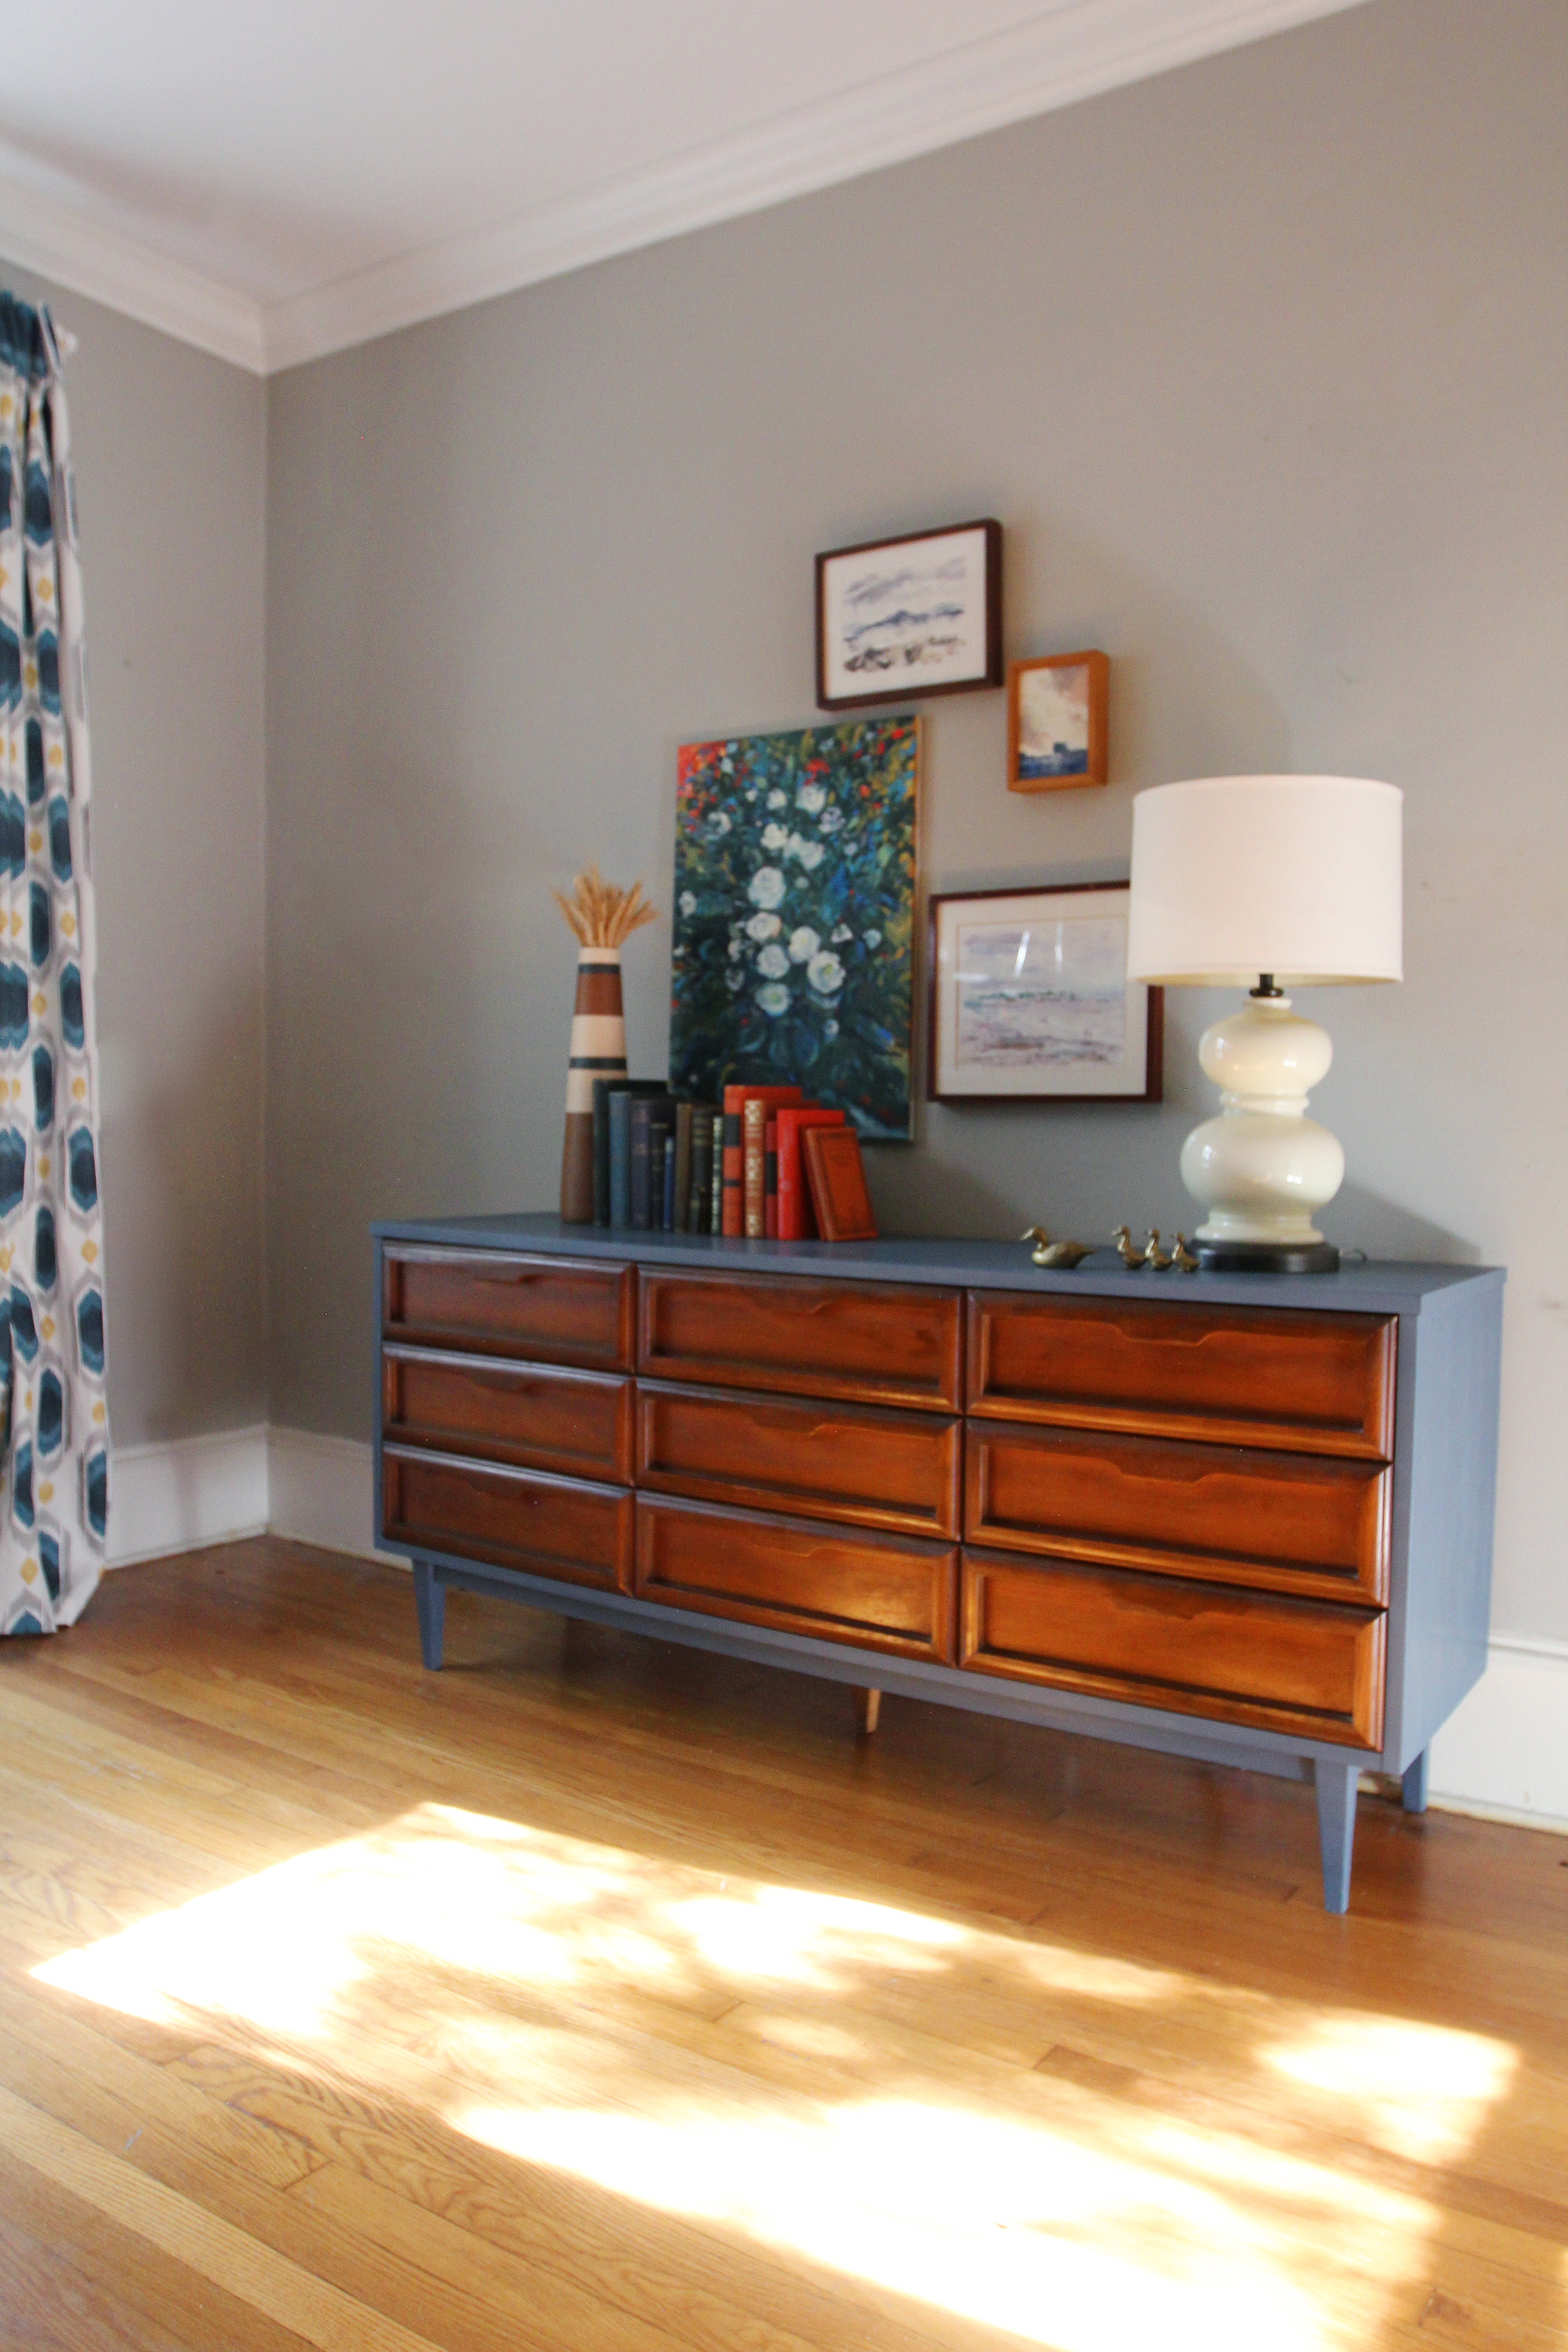 jo-torrijos-a-simpler-design-atlanta-painted-furniture-annie-sloan-aubusson-blue-french-linen-mid-century-painted-dresser-4.jpg